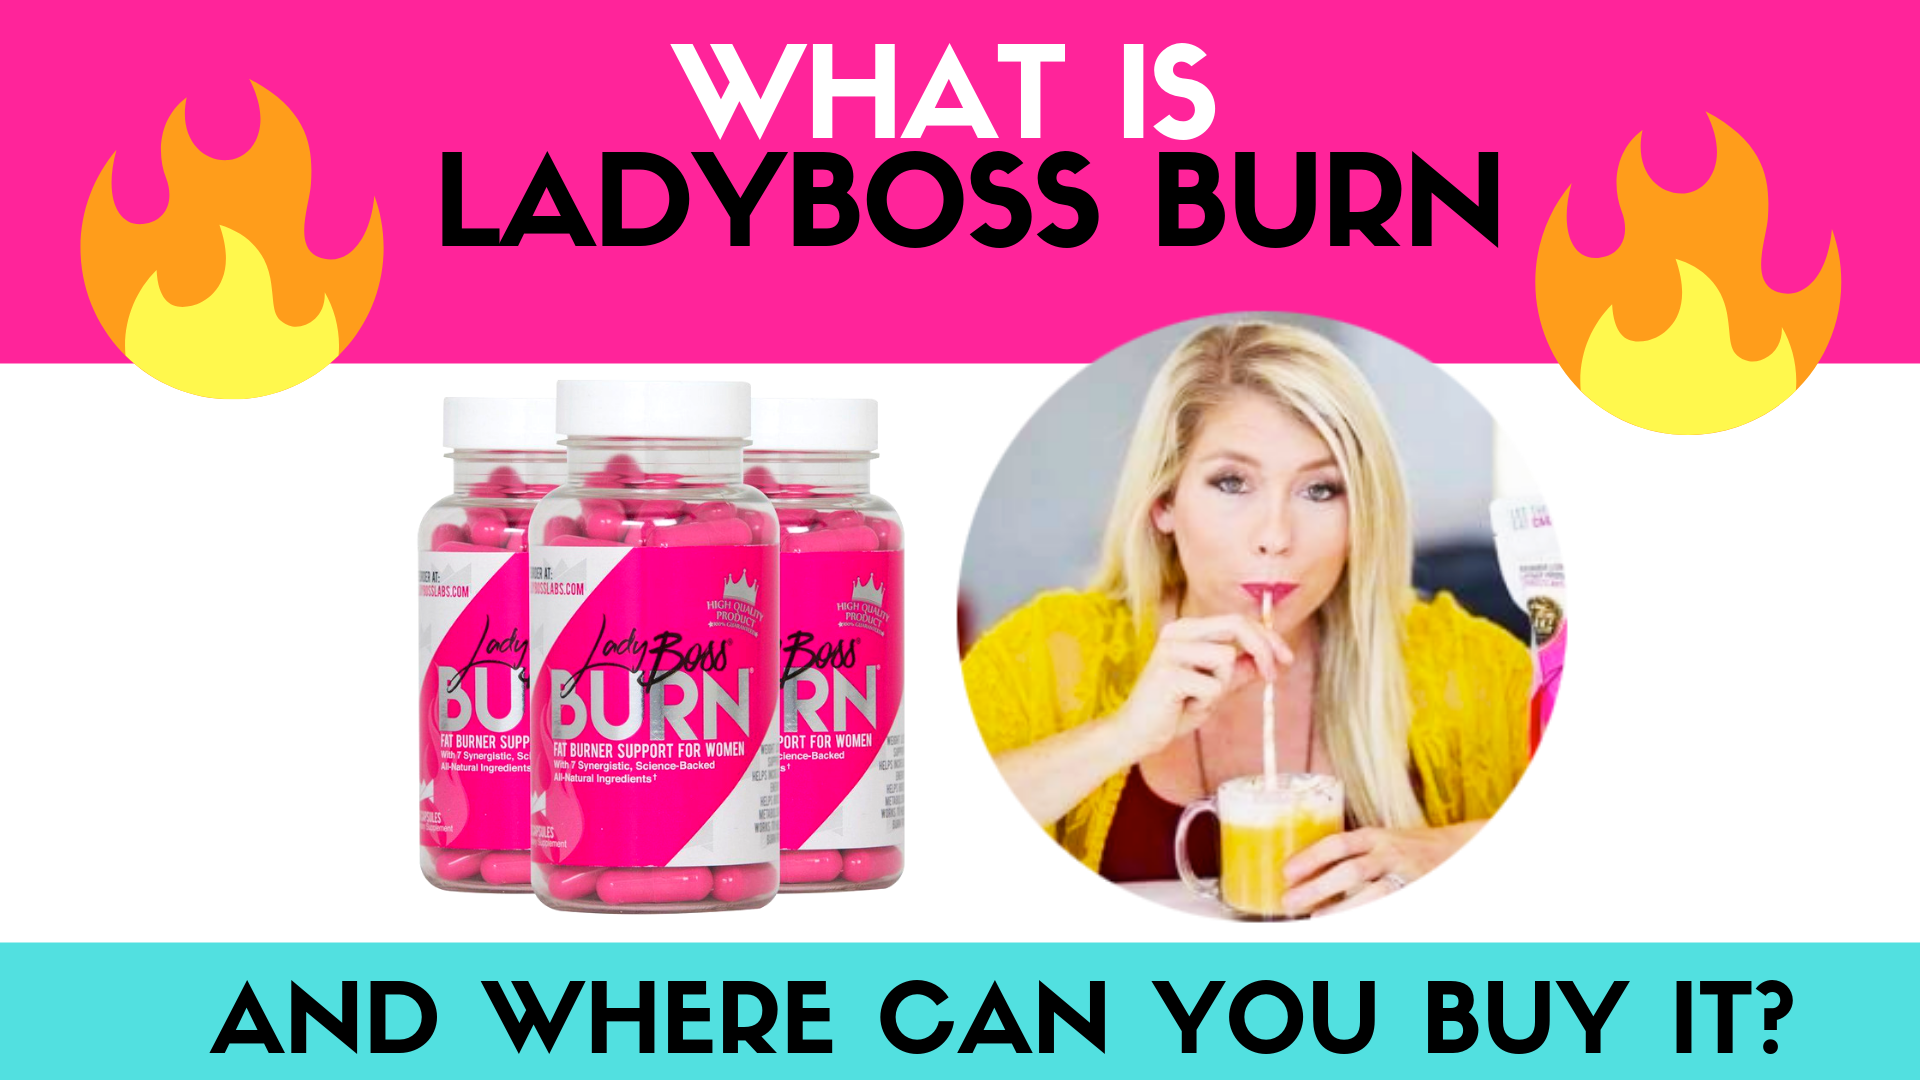 What is ladyboss burn (1).png